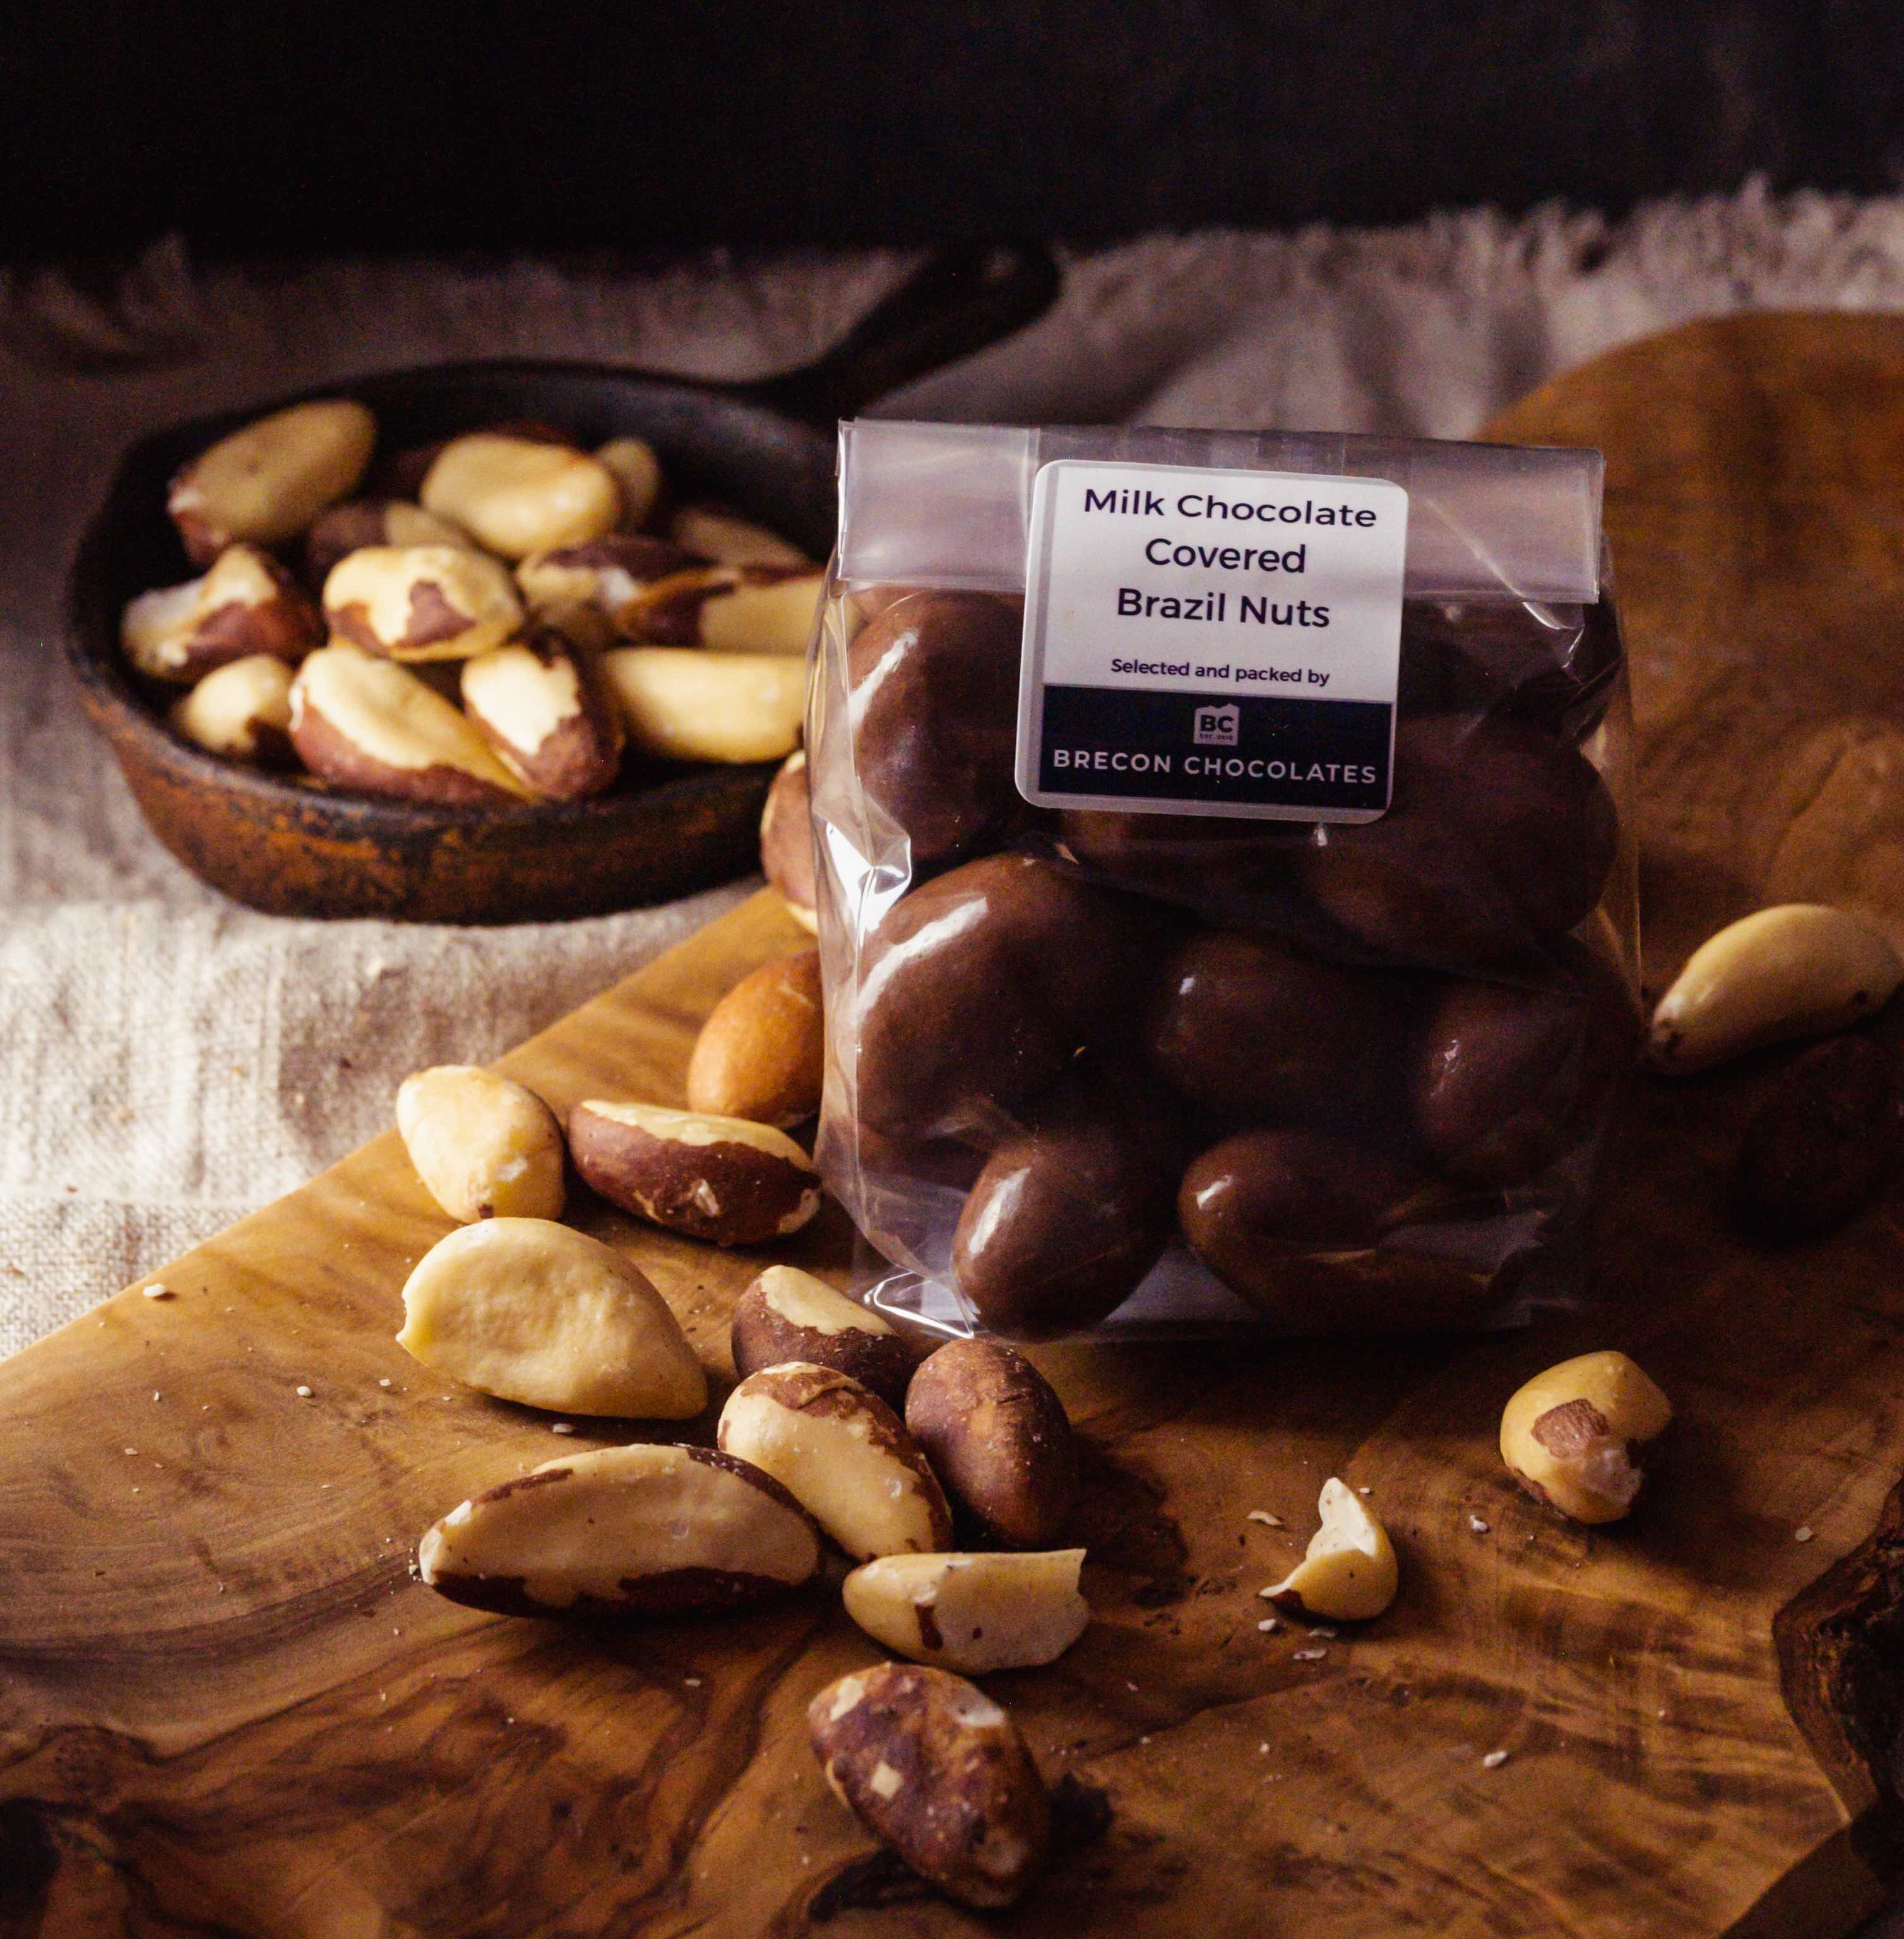 Milk Chocolate Covered Brazils Nuts. 200g bag.